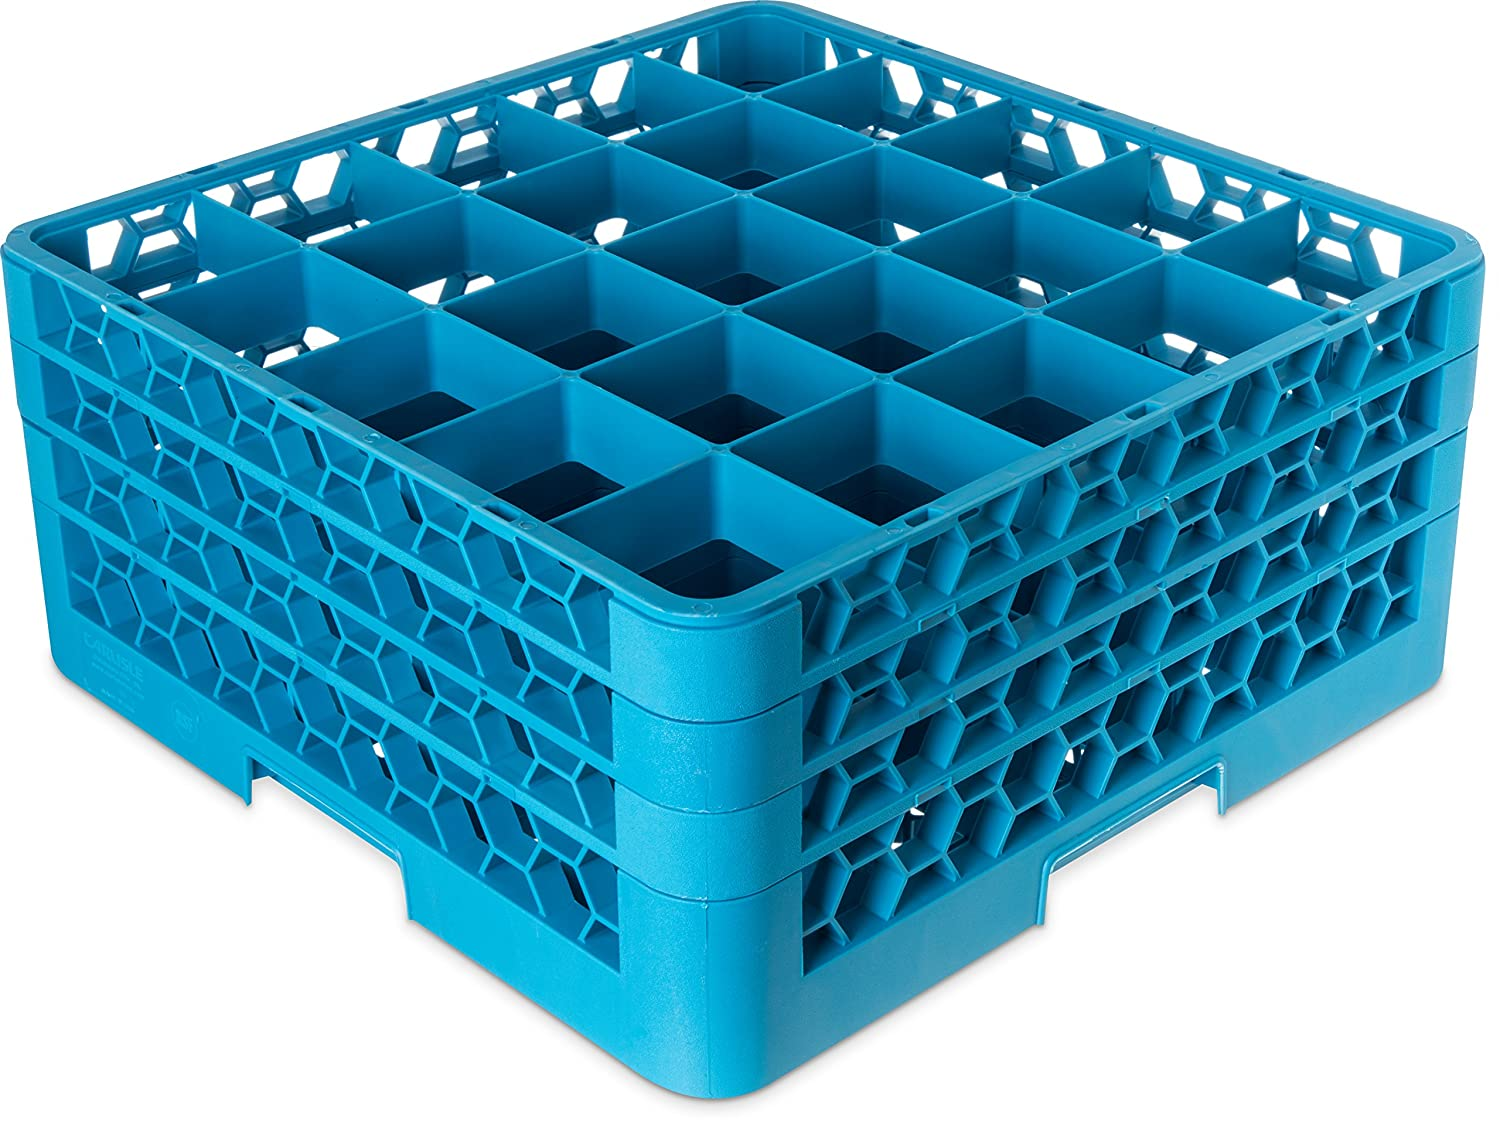 "Carlisle RG9-314 OptiClean 9-Compartment Glass Rack w/ 3 Extenders, Polypropylene, 20.88"" Length, 20.88"" Width, 8.72"" Height, Blue"